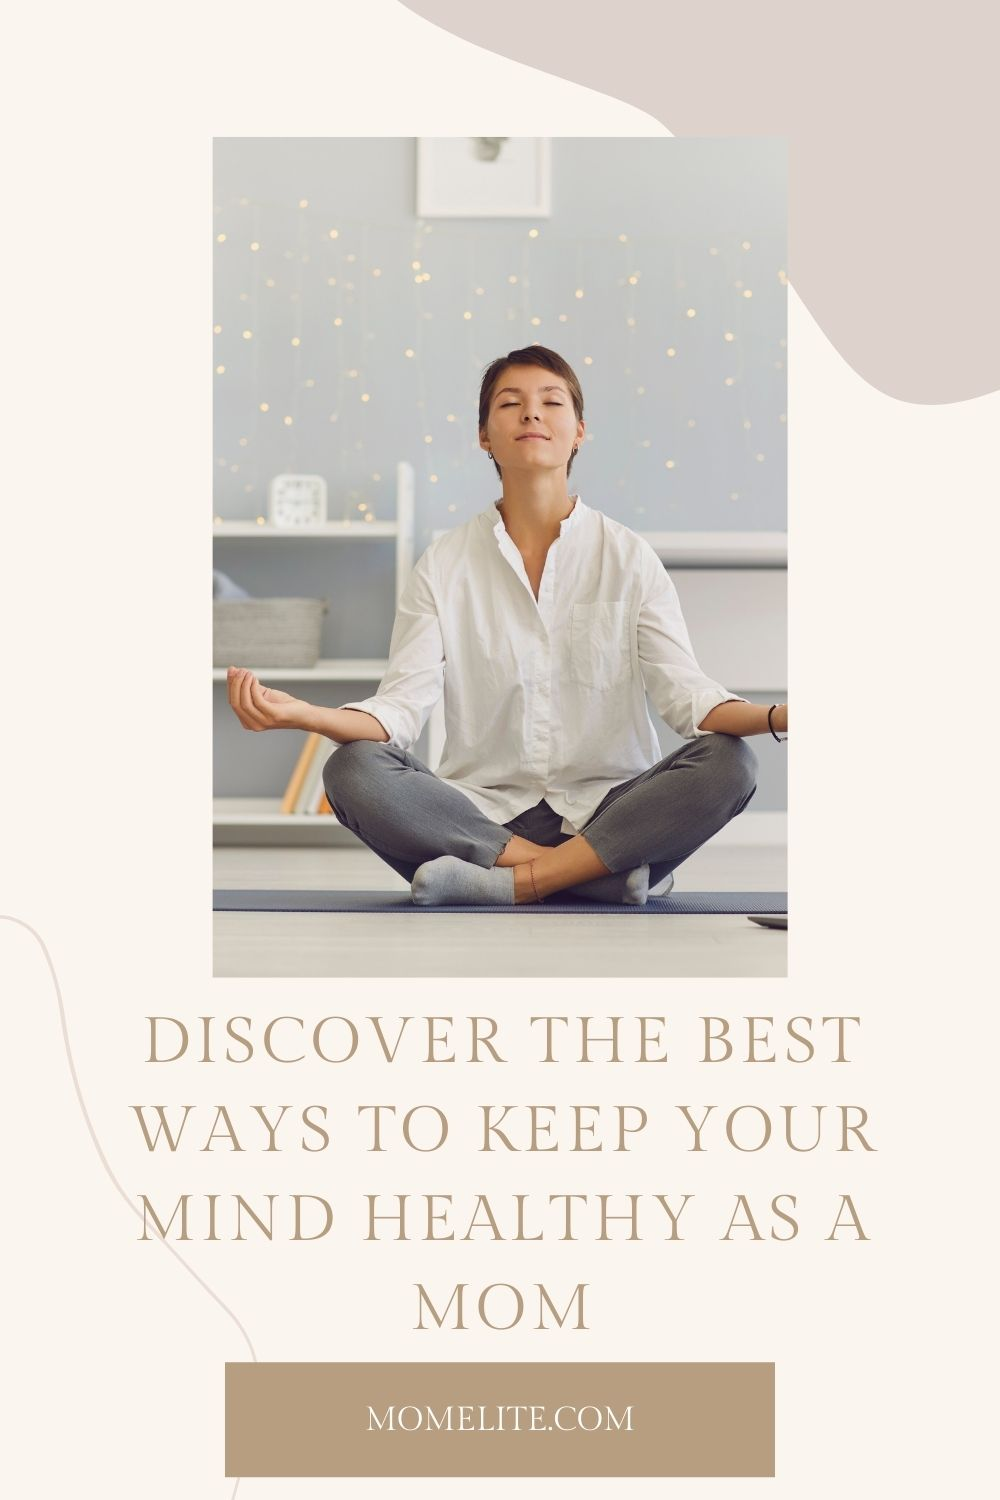 DISCOVER THE BEST WAYS TO KEEP YOUR MIND HEALTHY AS A MOM